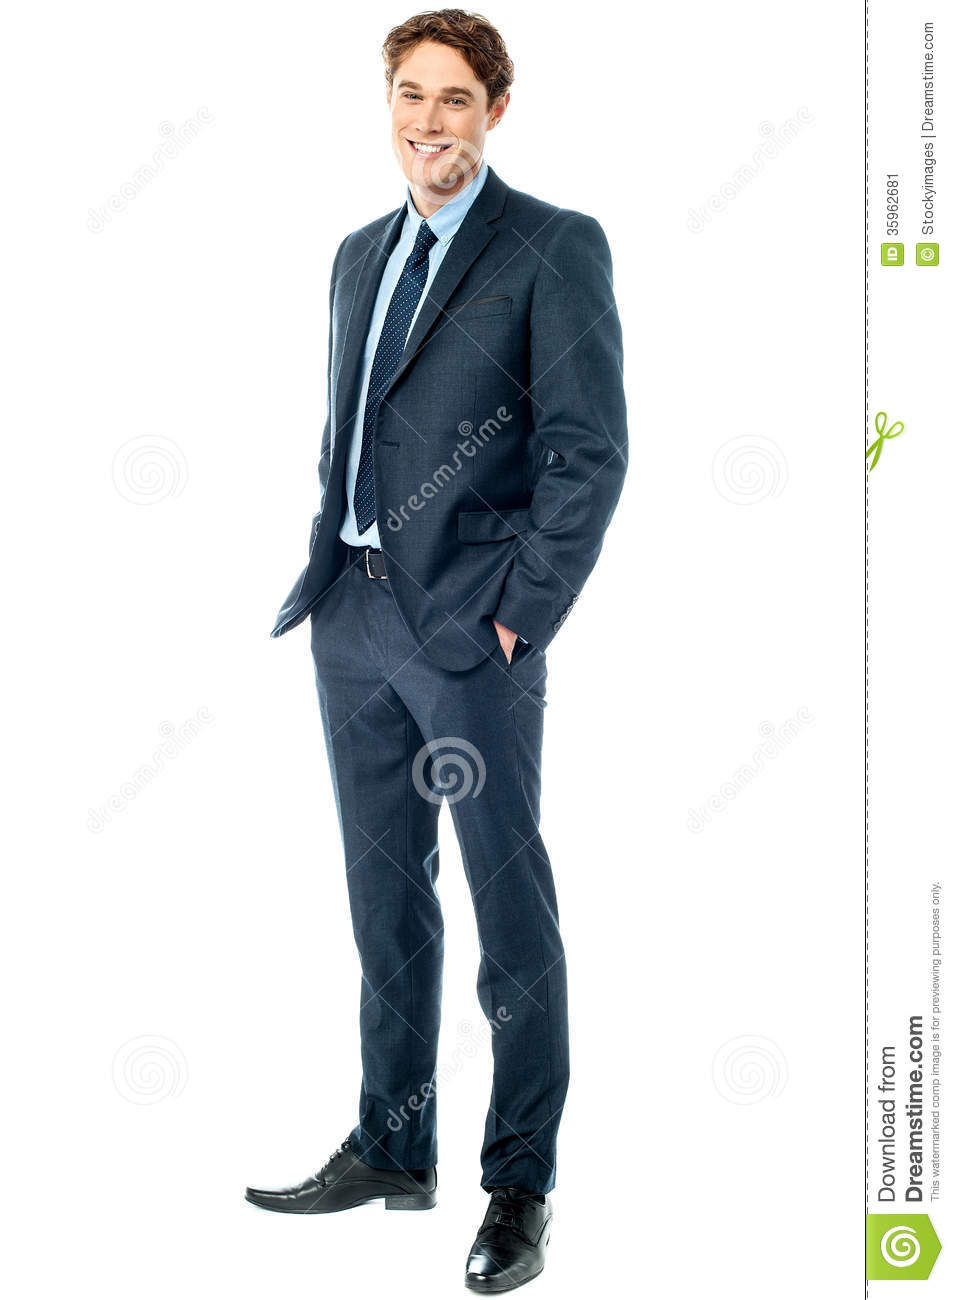 young stylish smiling corporate guy stock image